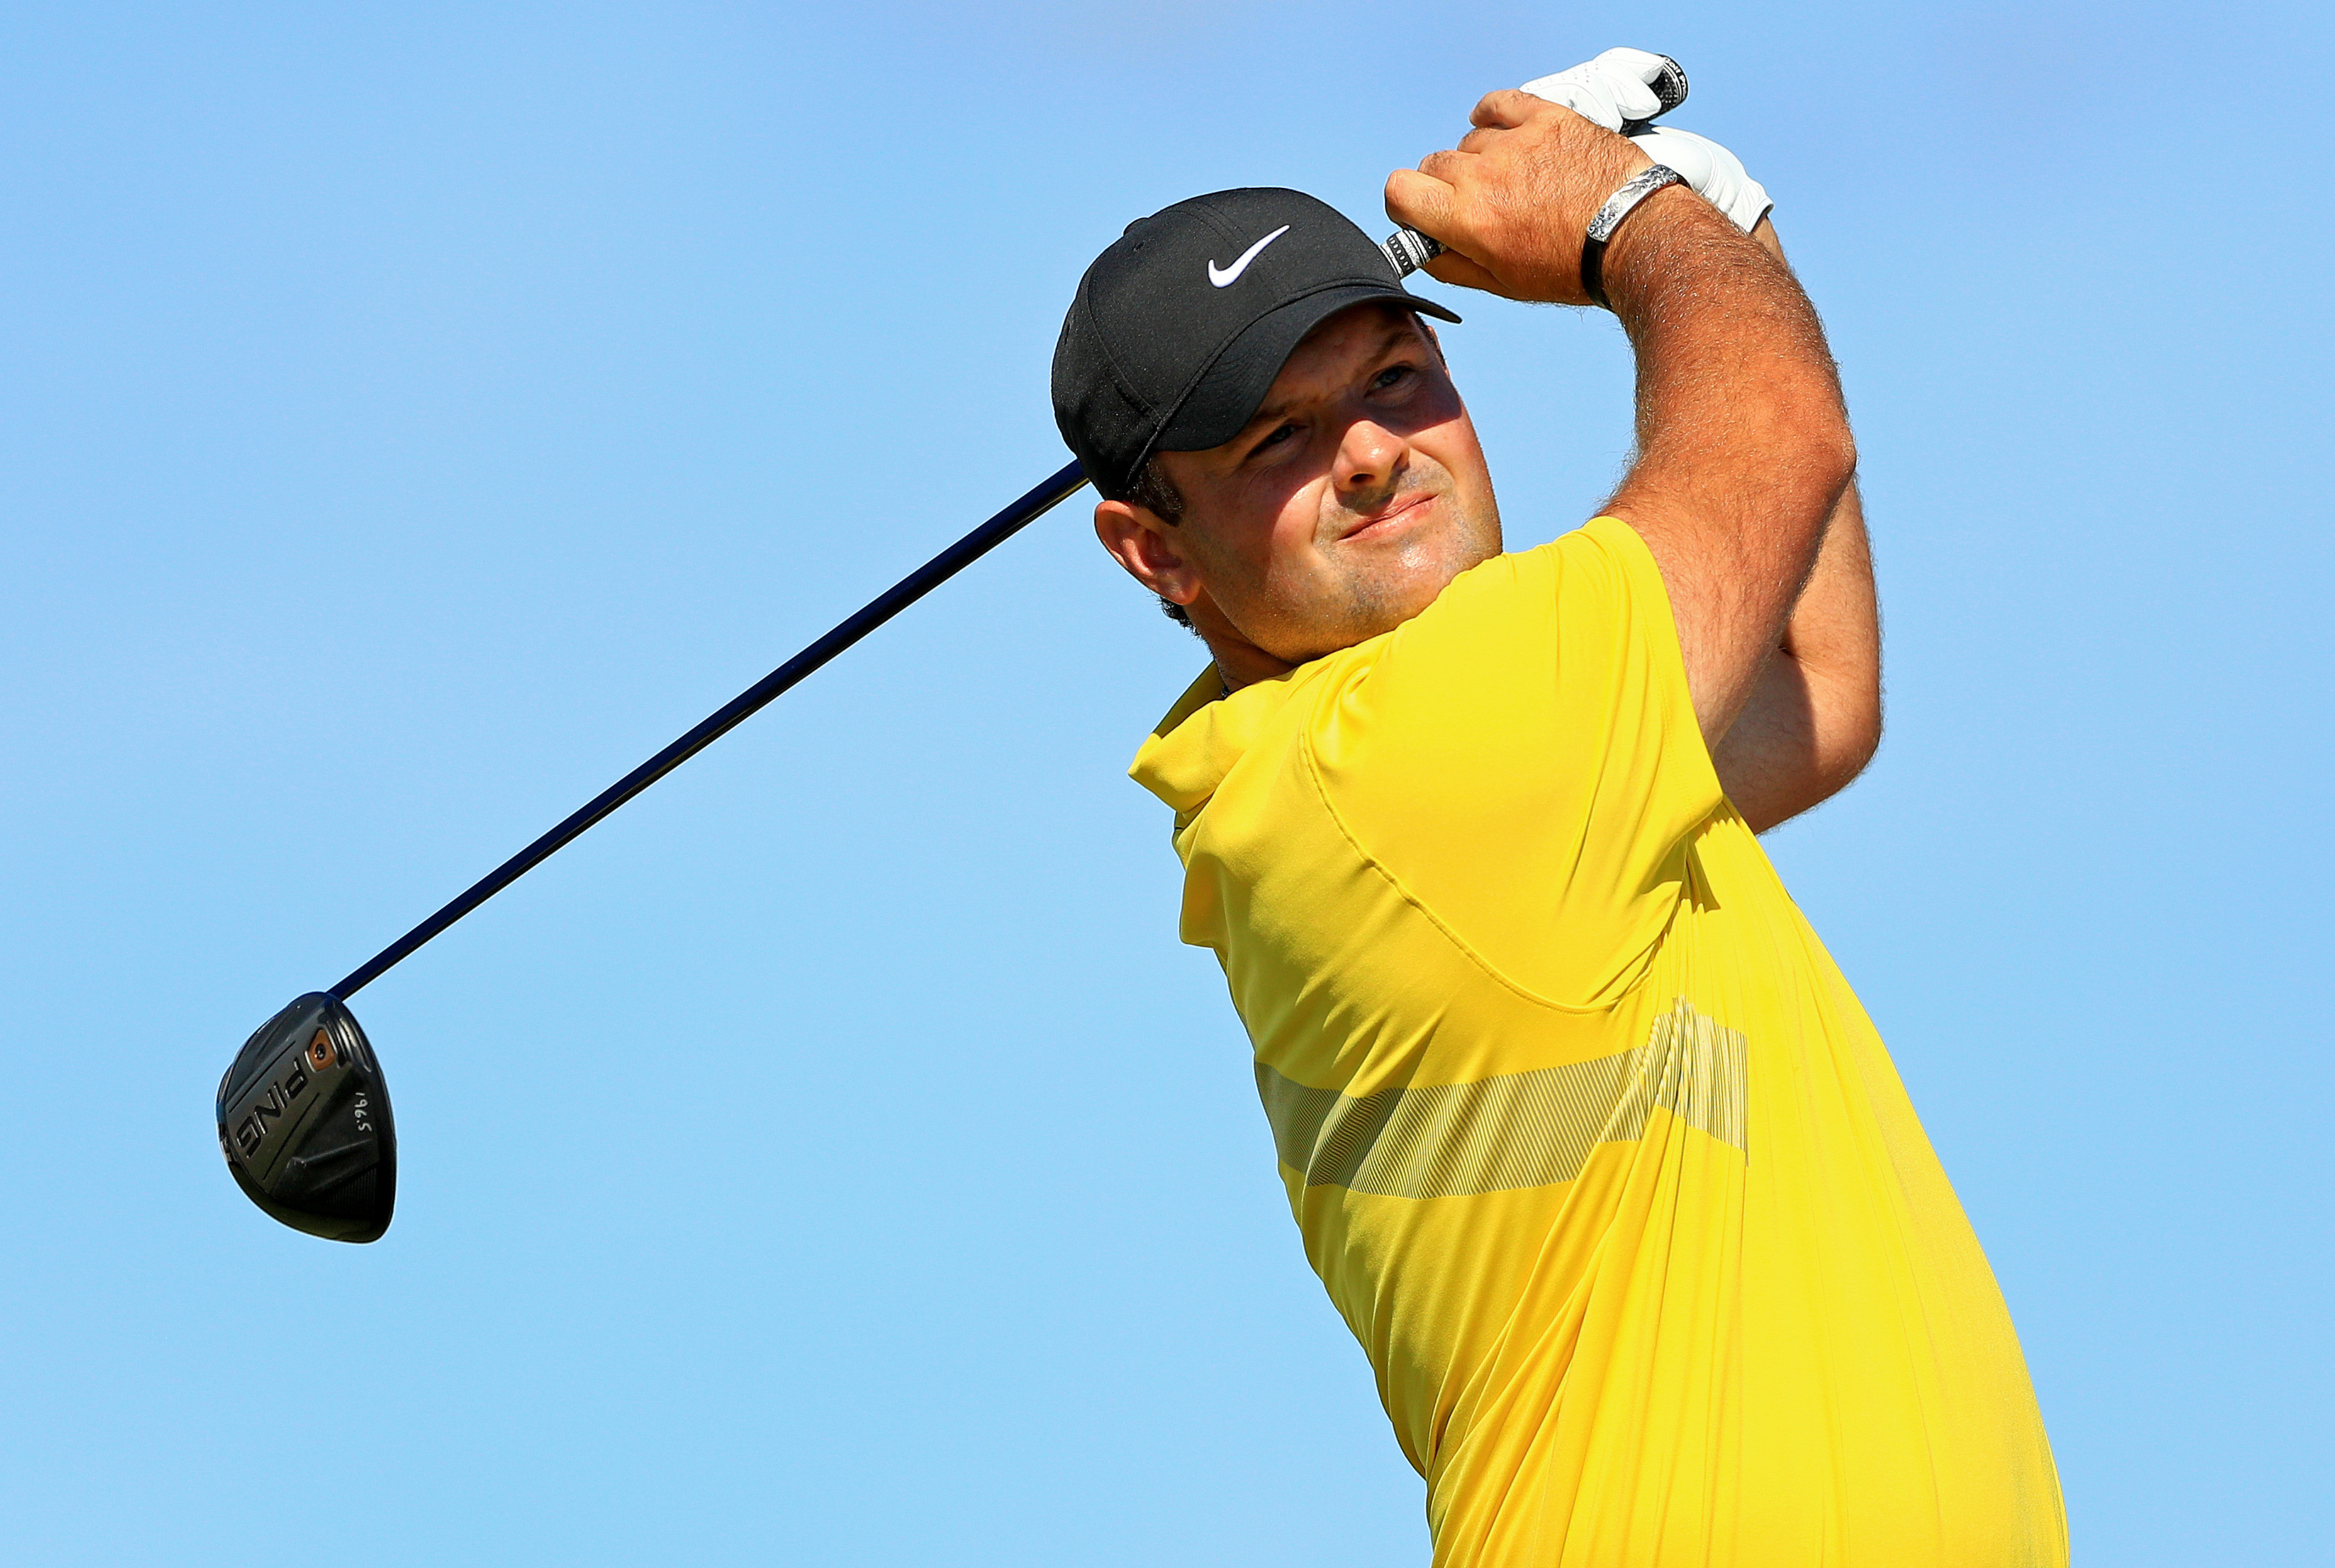 Patrick Reed penalized for rules breach at Tiger Woods' Hero World Challenge